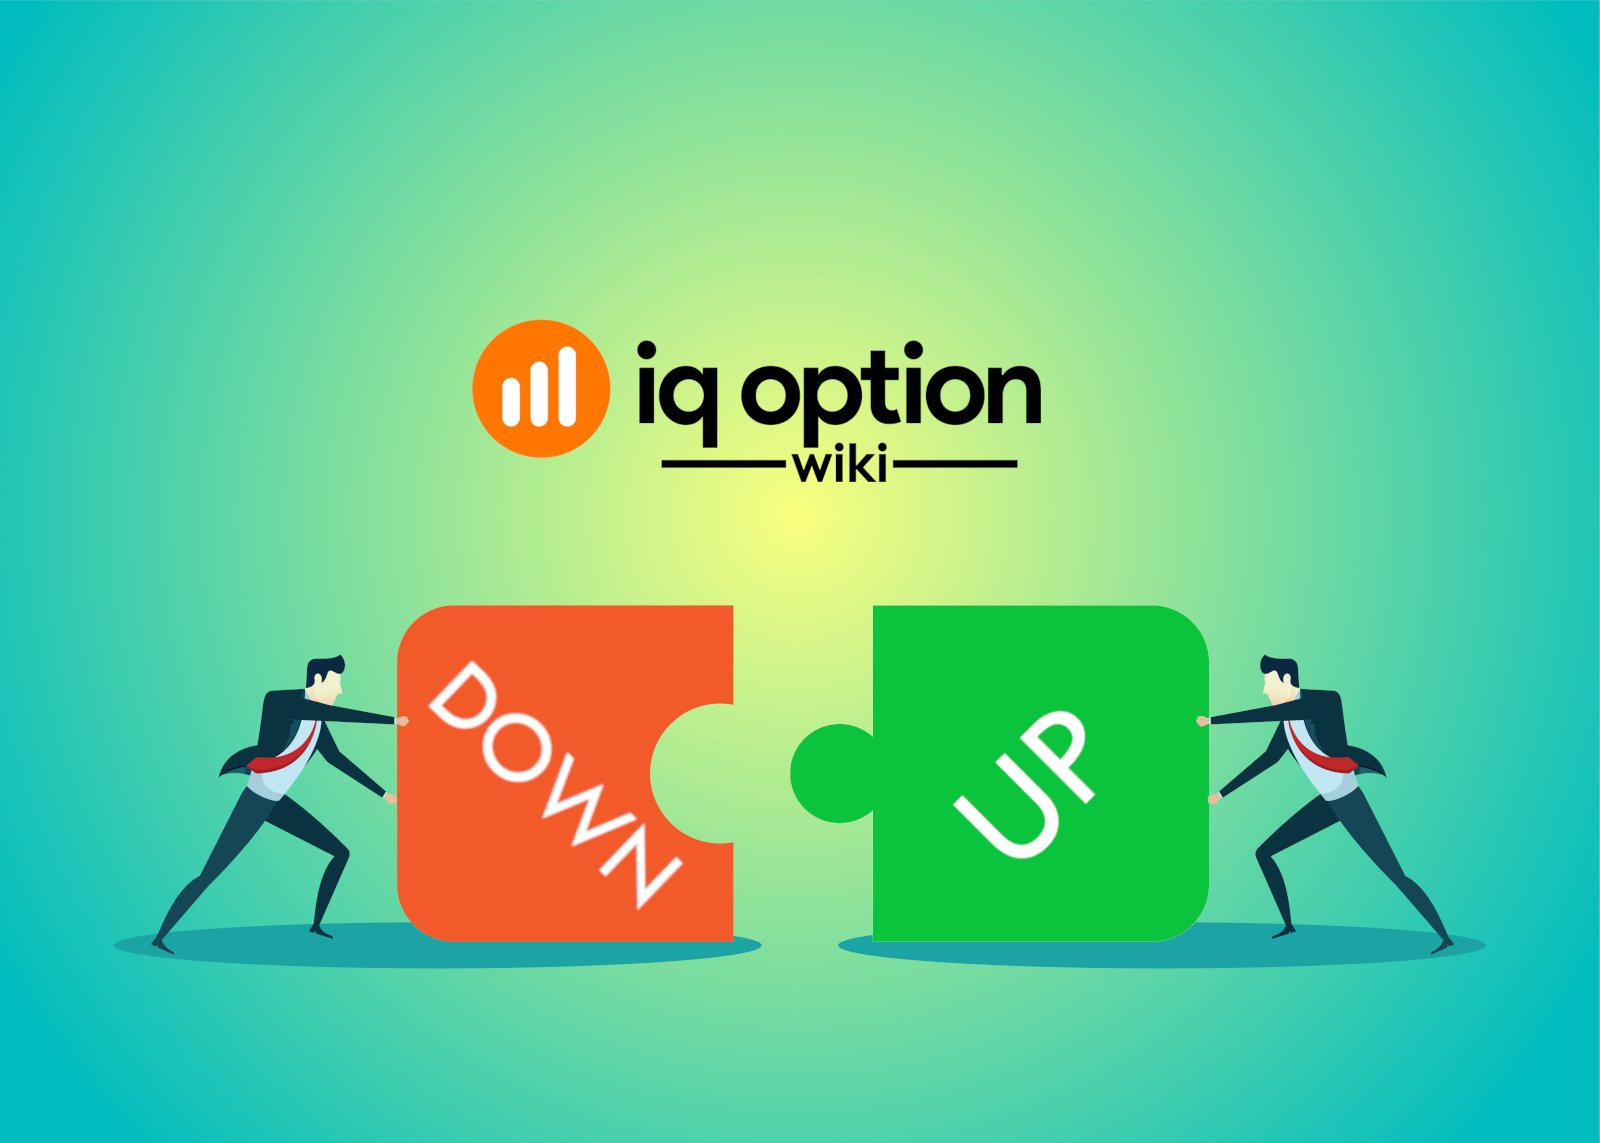 higher - lower options at iq option